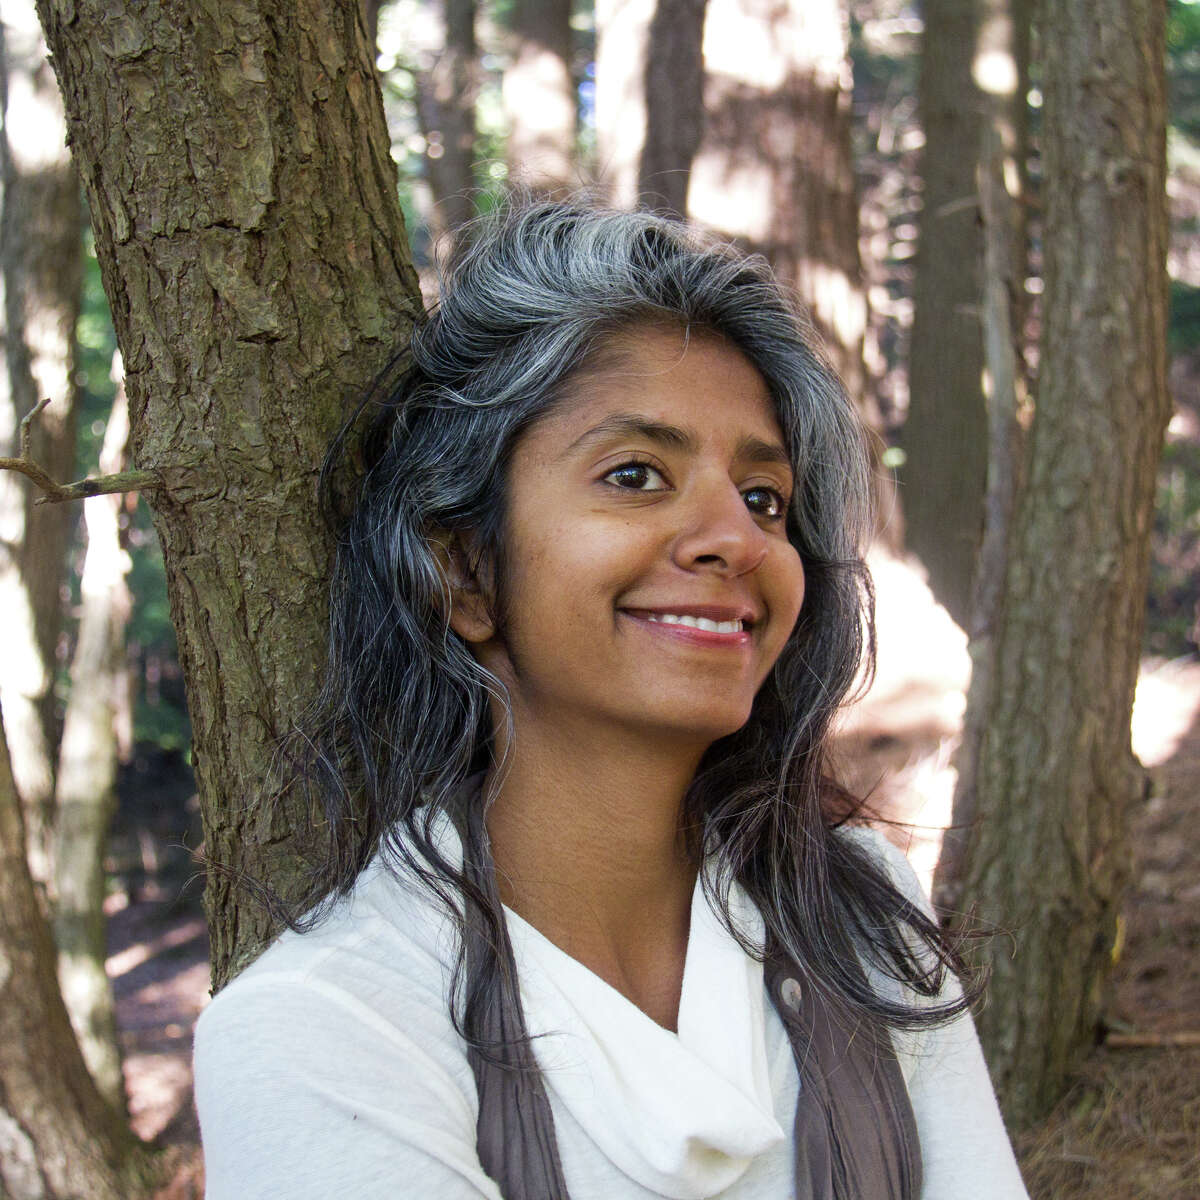 Pooja Prema, the founder of the Ritual Theatre and Rites of Passage